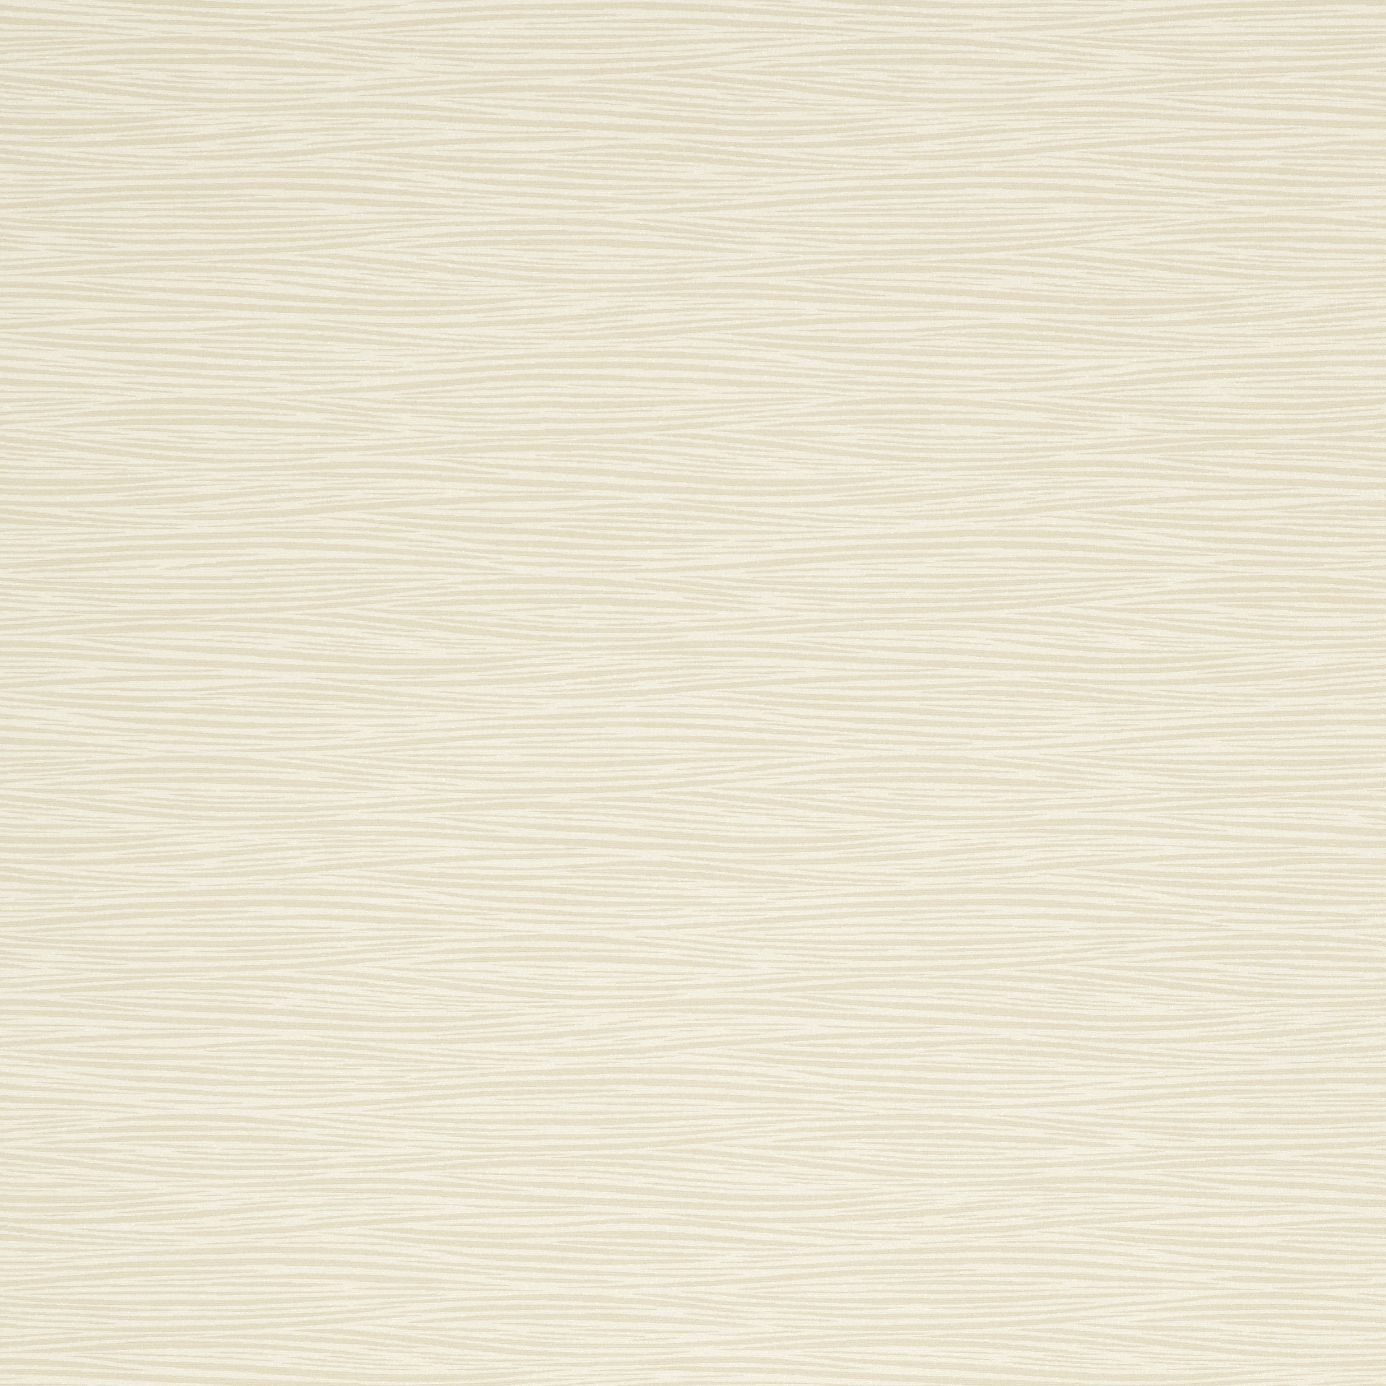 Wallpaper Neutral Colors